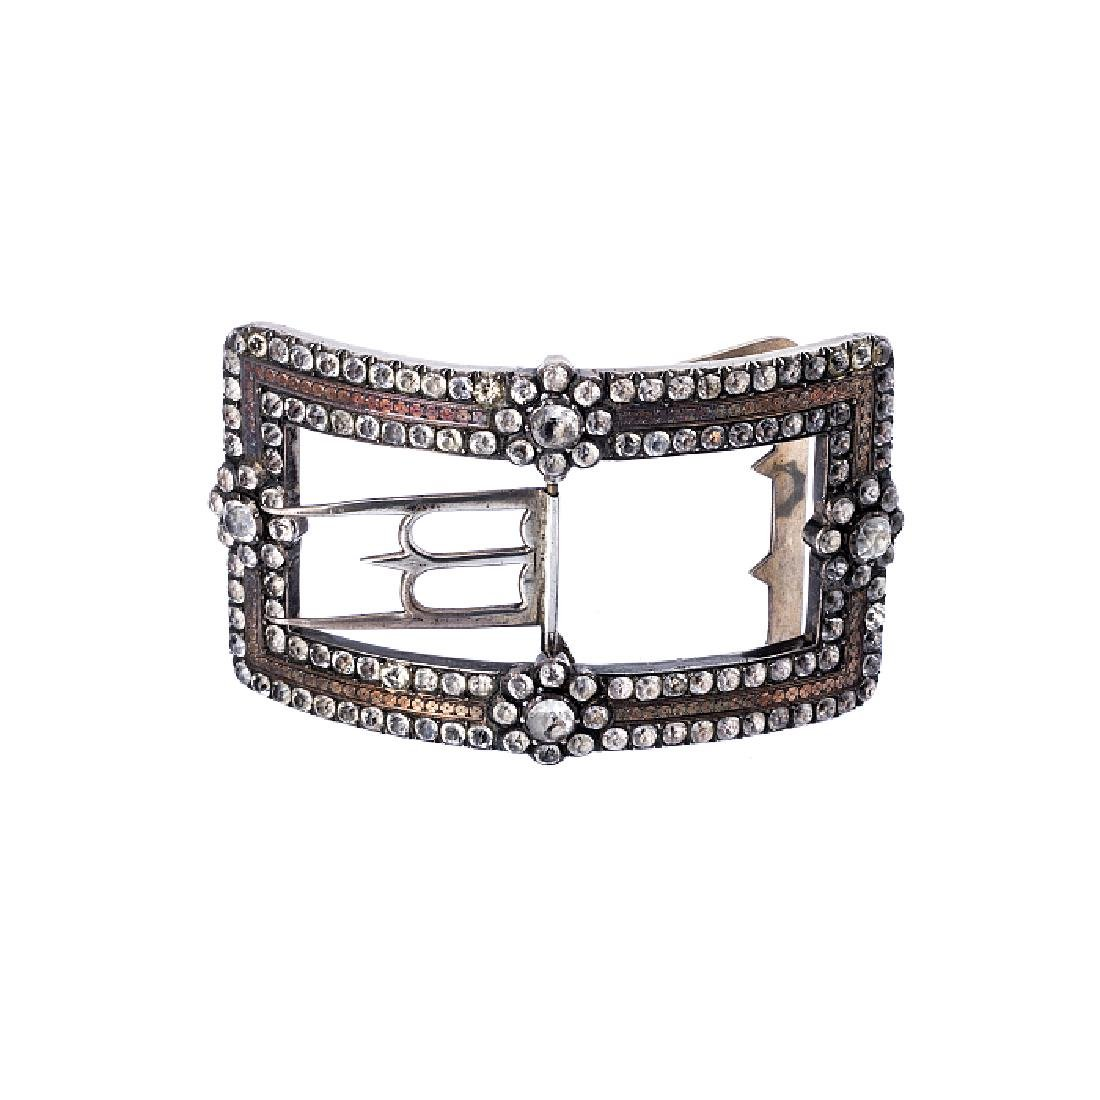 Silver buckle with glass pieces